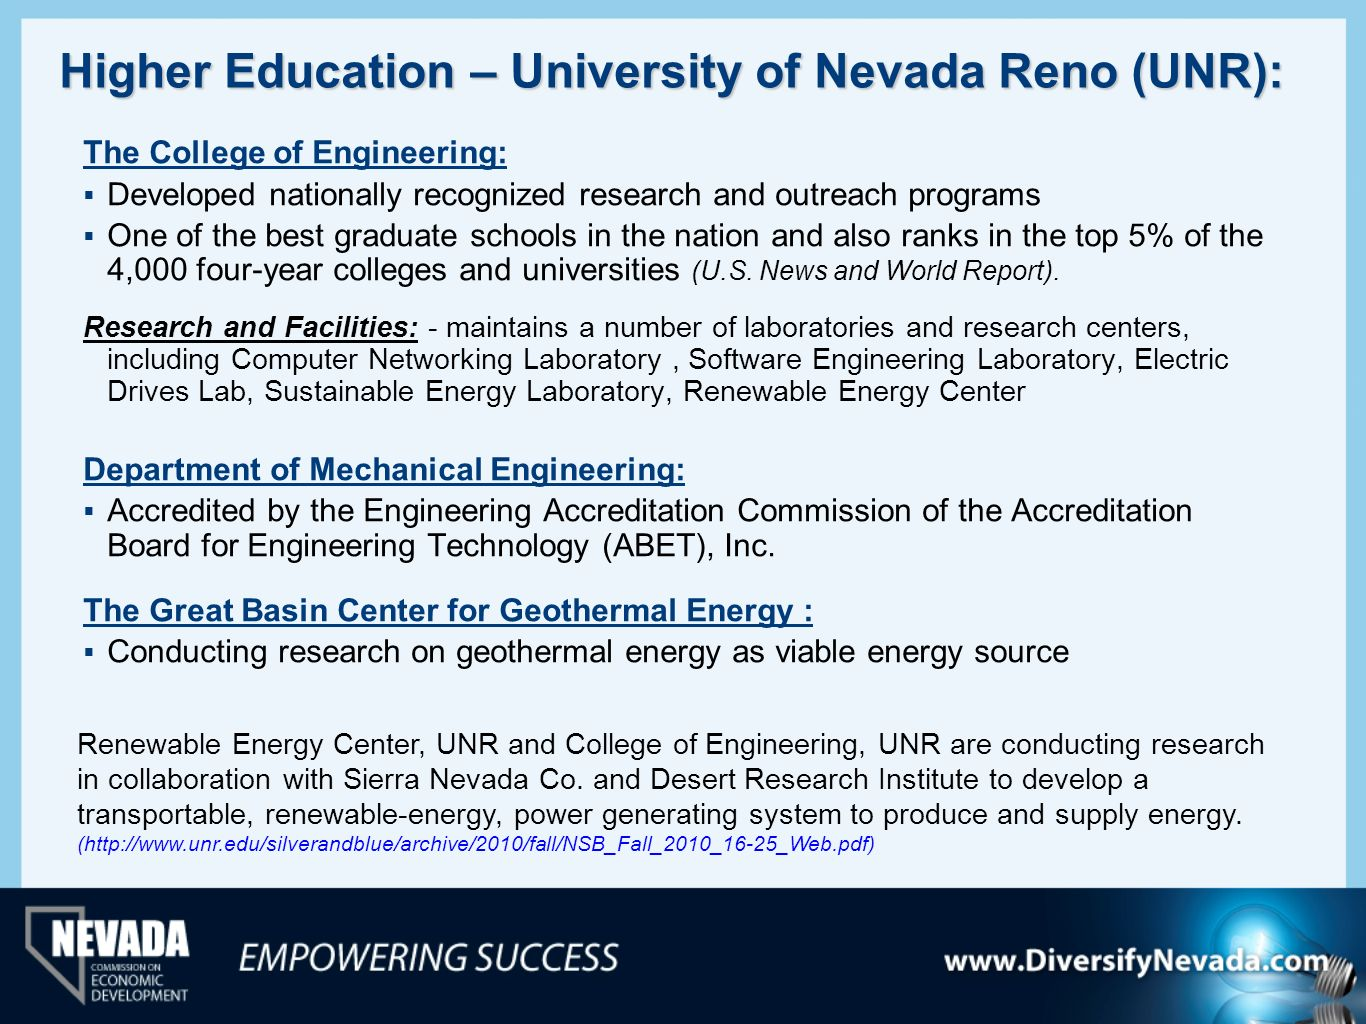 Higher Education – University of Nevada Reno (UNR): The College of Engineering: Developed nationally recognized research and outreach programs One of